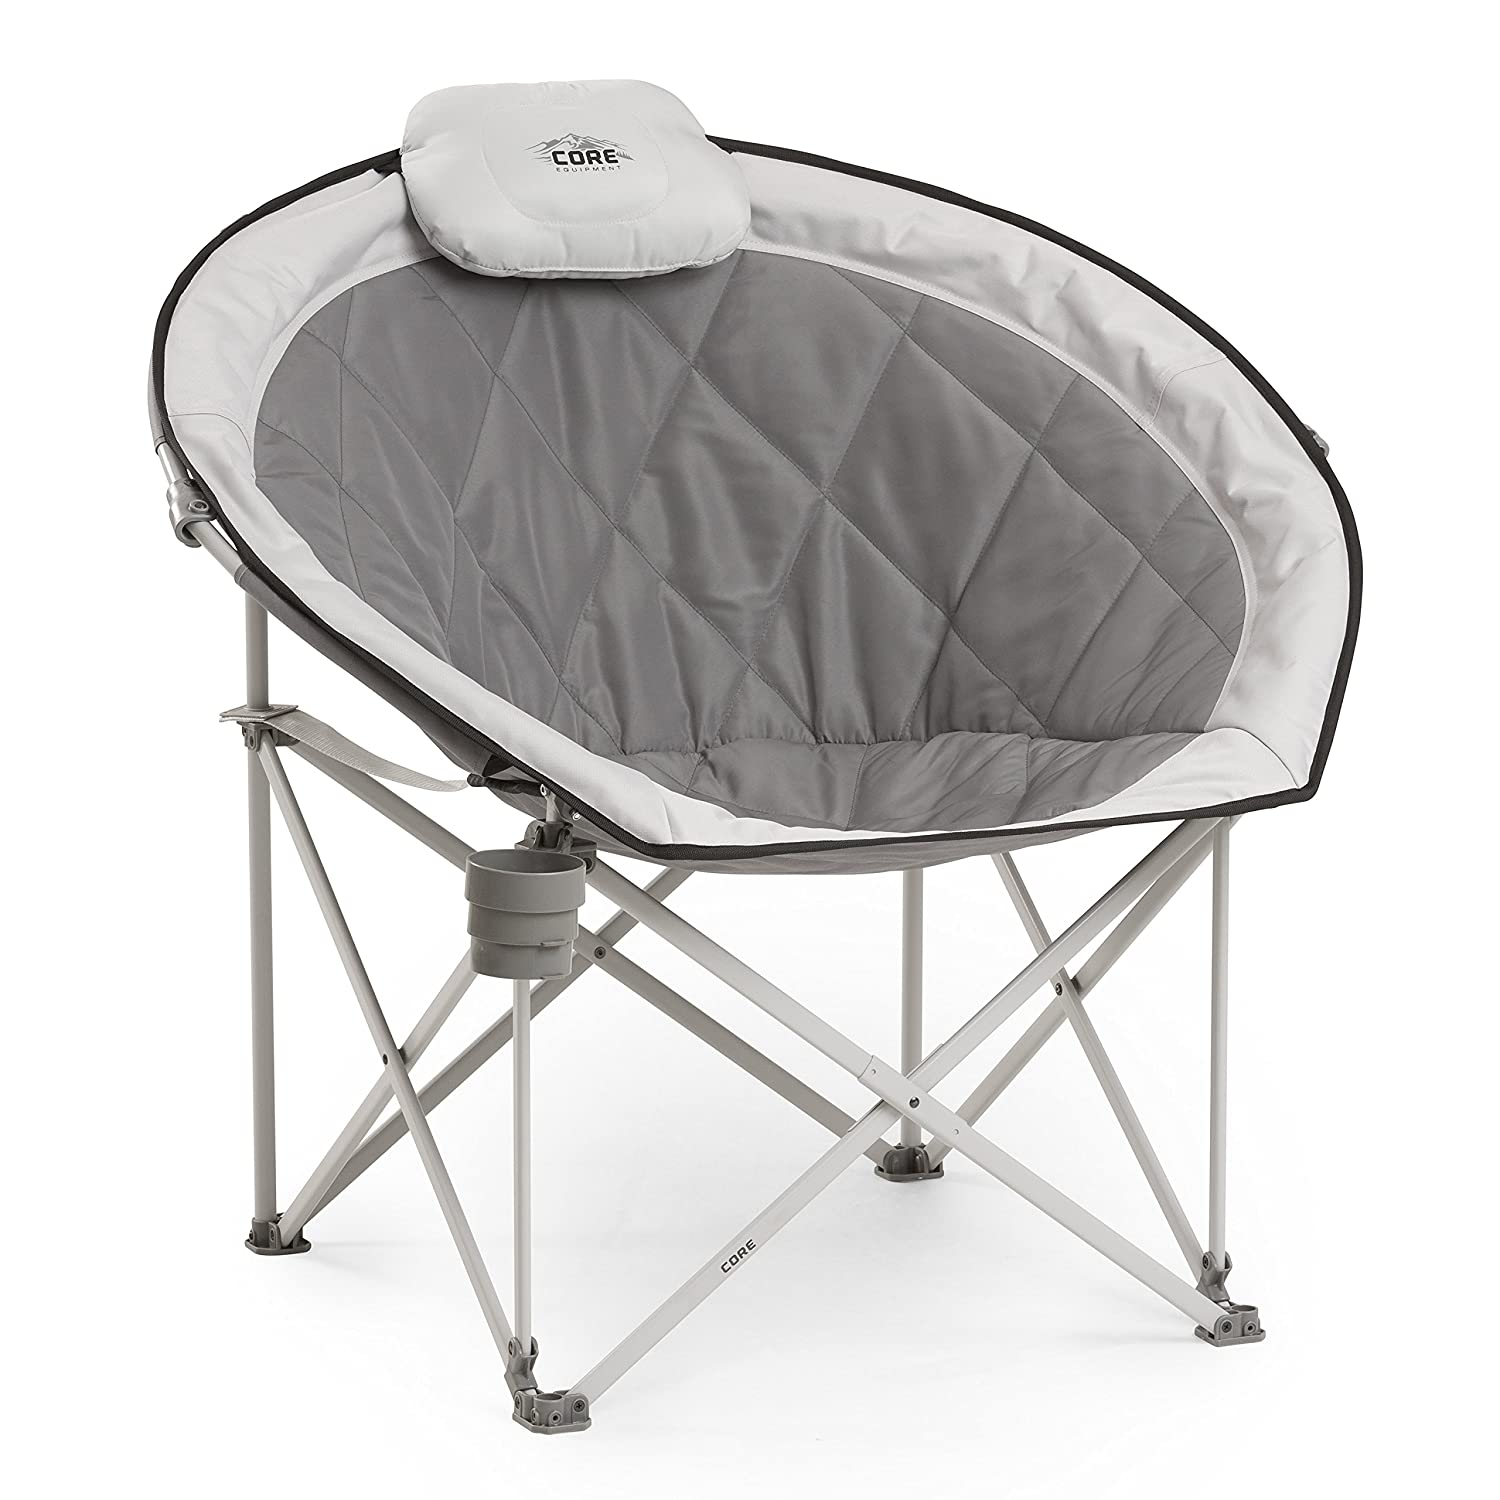 Amazon Com Core Equipment Folding Oversized Padded Moon Round Rh Amazon Com  Round Camping Chair Big